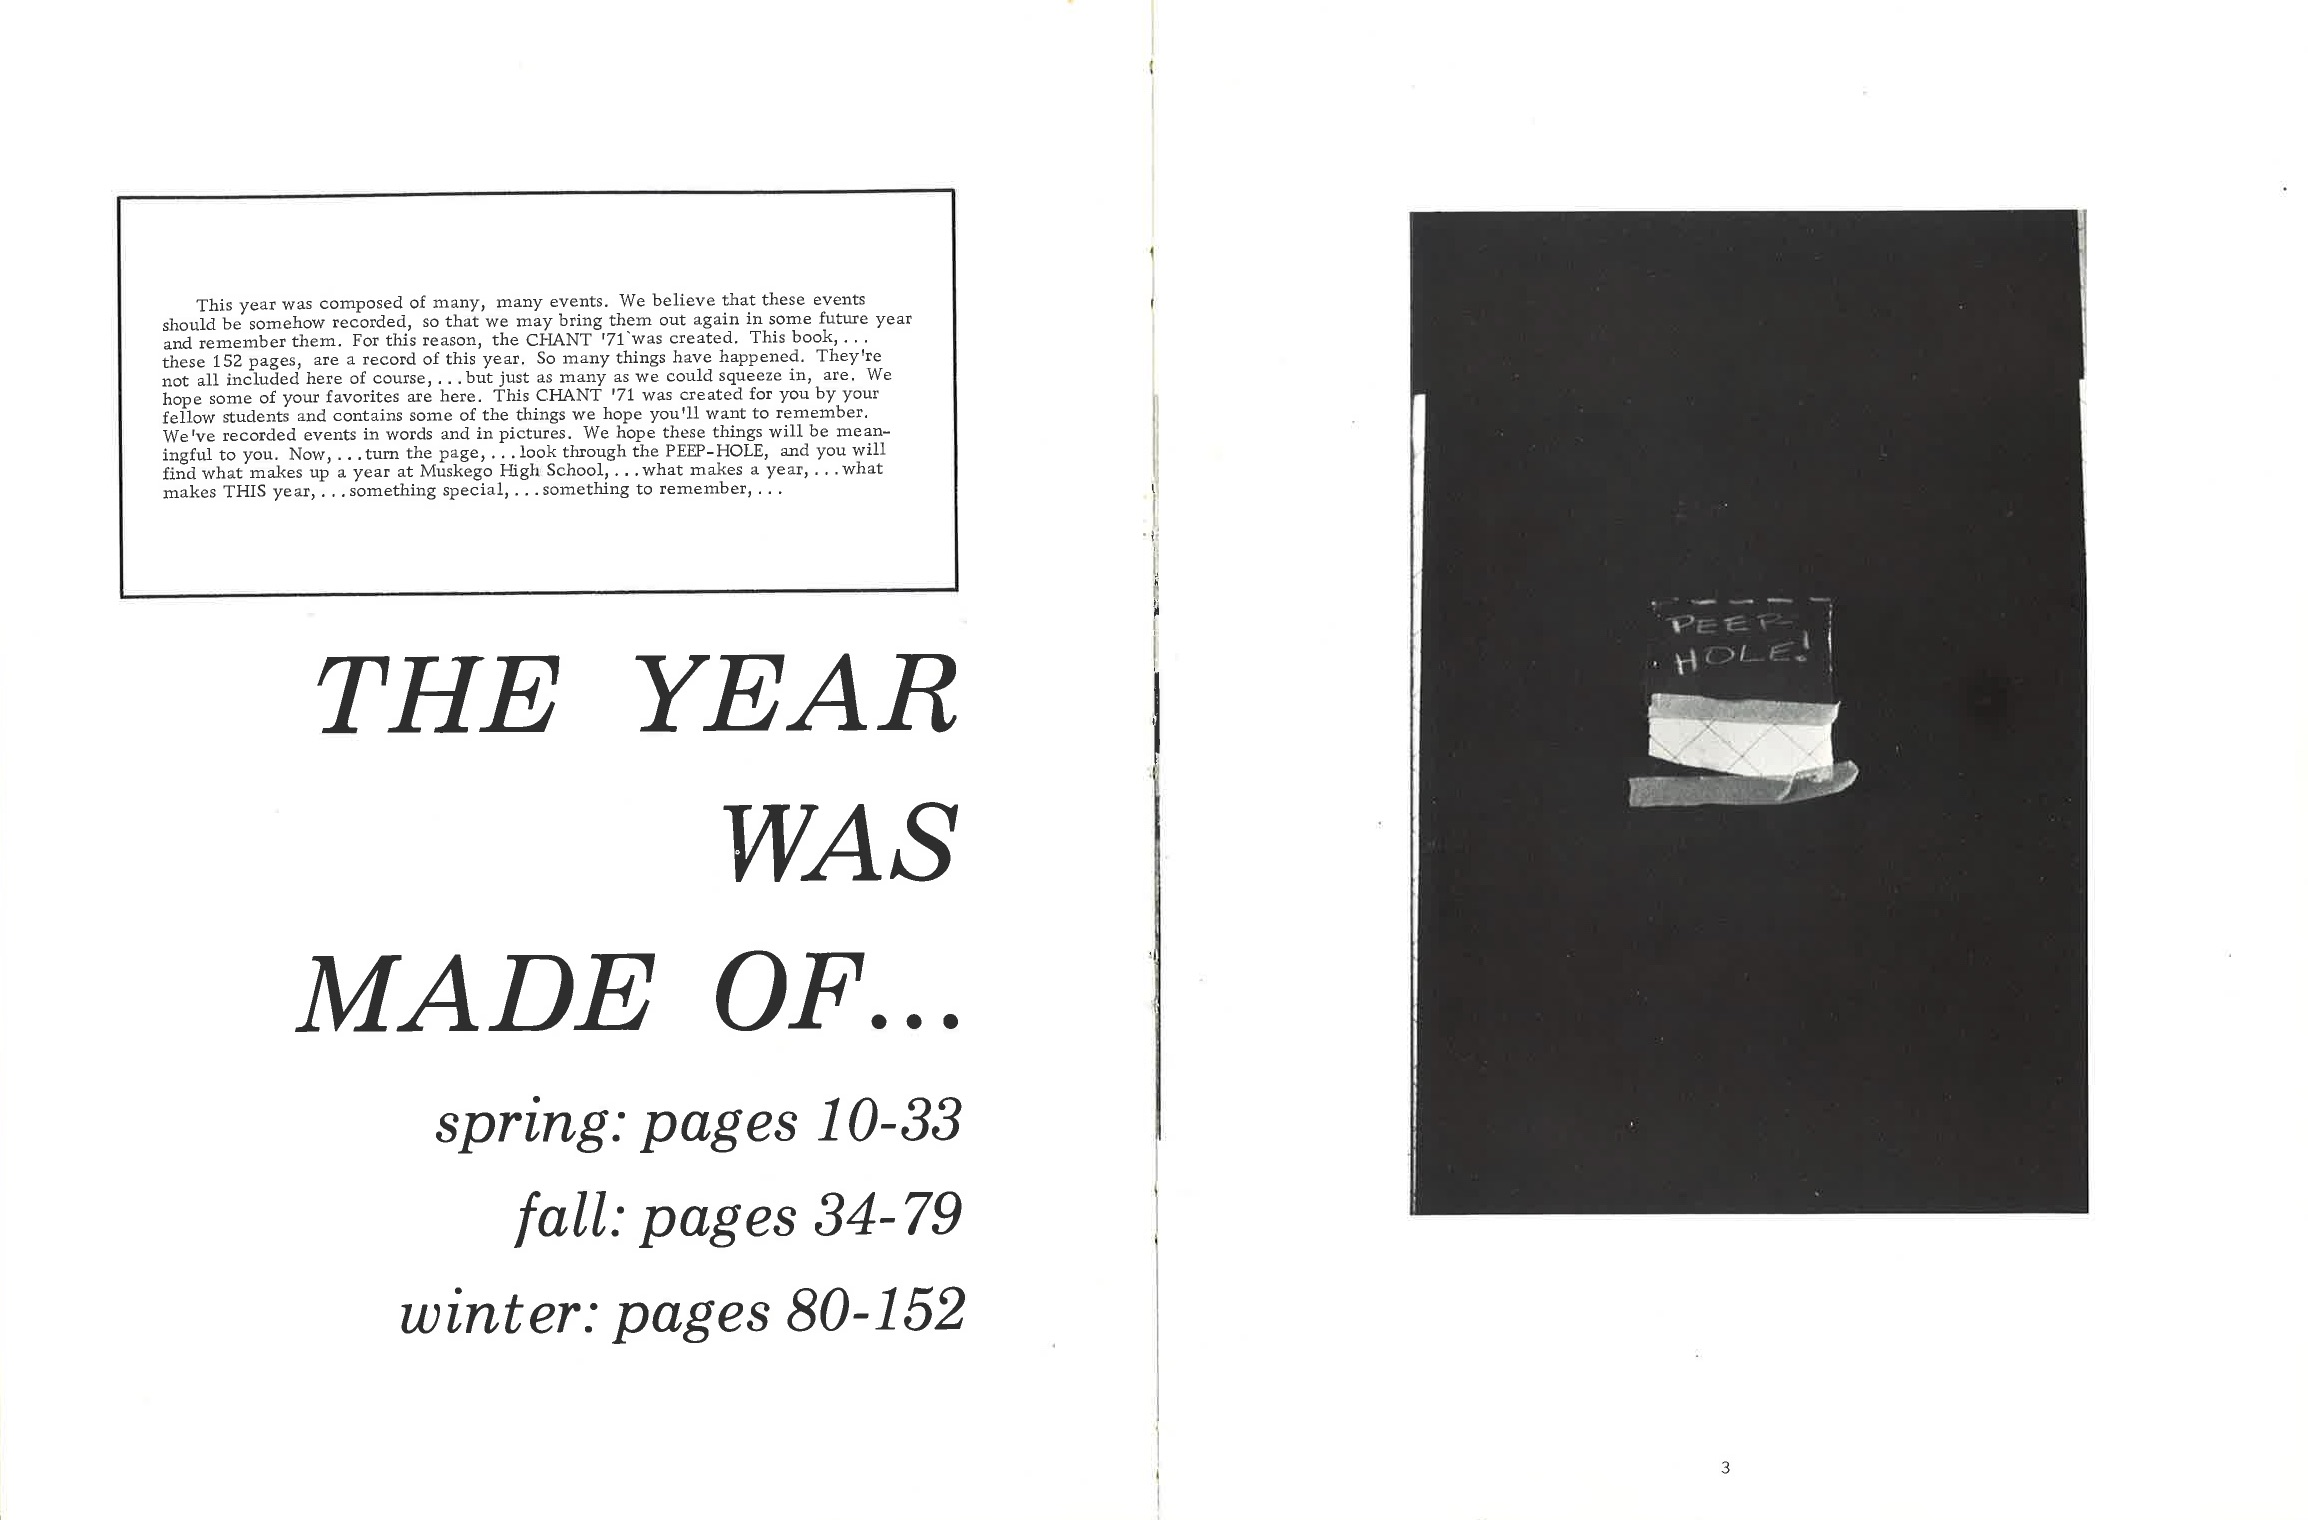 1971_Yearbook_TOC.jpg